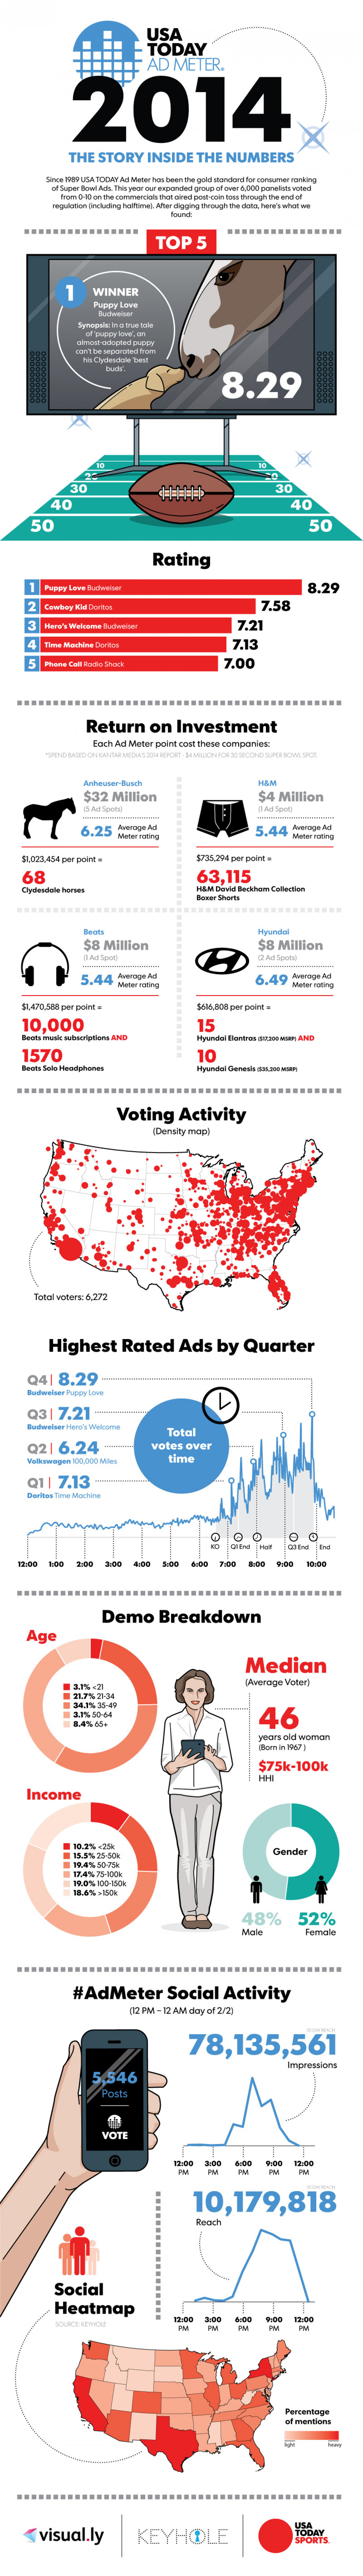 USA Today Ad Meter 2014 - The Story Inside the Numbers Infographic